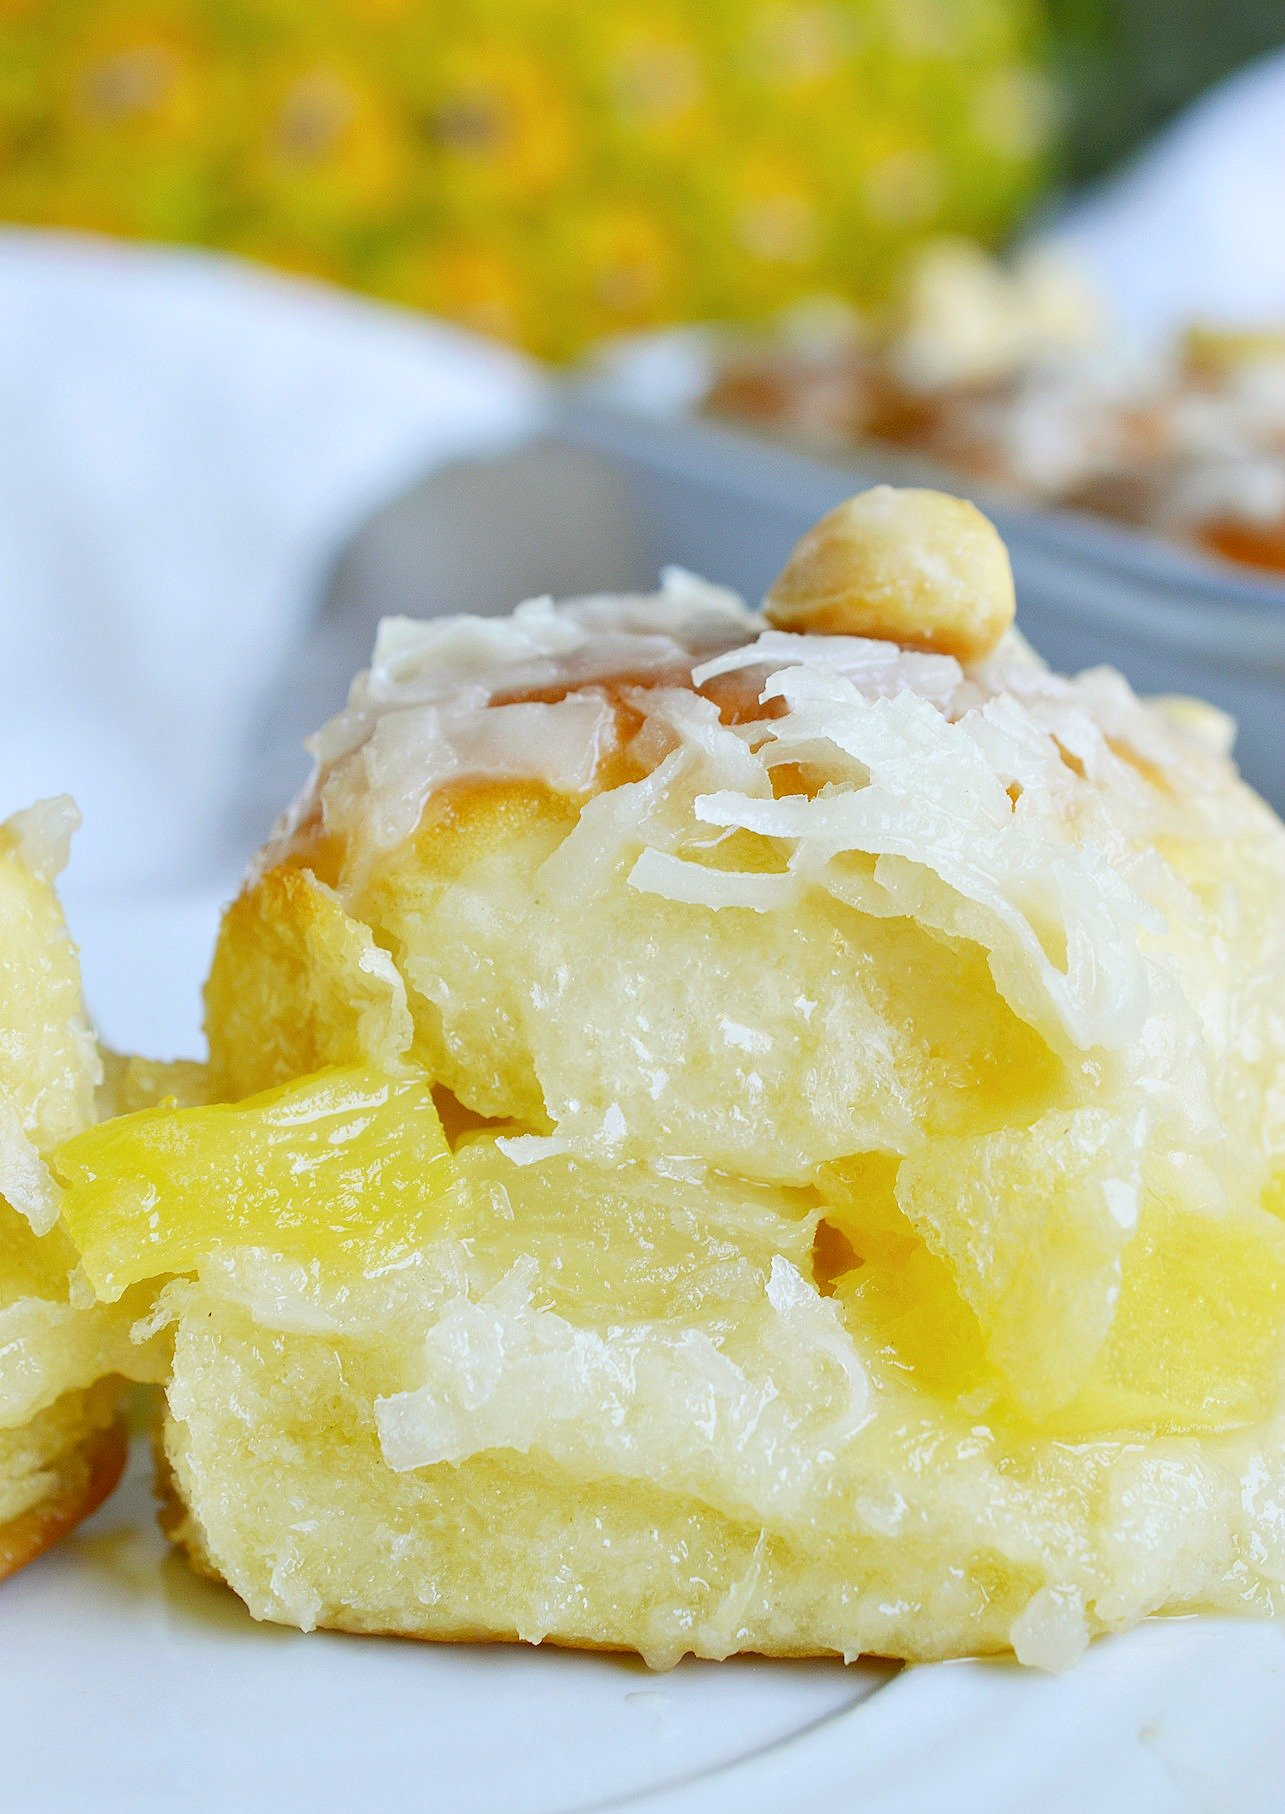 Pineapple Coconut Hawaiian Sweet Rolls in 20 minutes! Yes, it is possible. Sweet Hawaiian rolls stuffed with pineapple and coconut then drizzled with a pineapple glaze. Top with macadamia nuts for the ultimate tropical inspired dessert recipe.